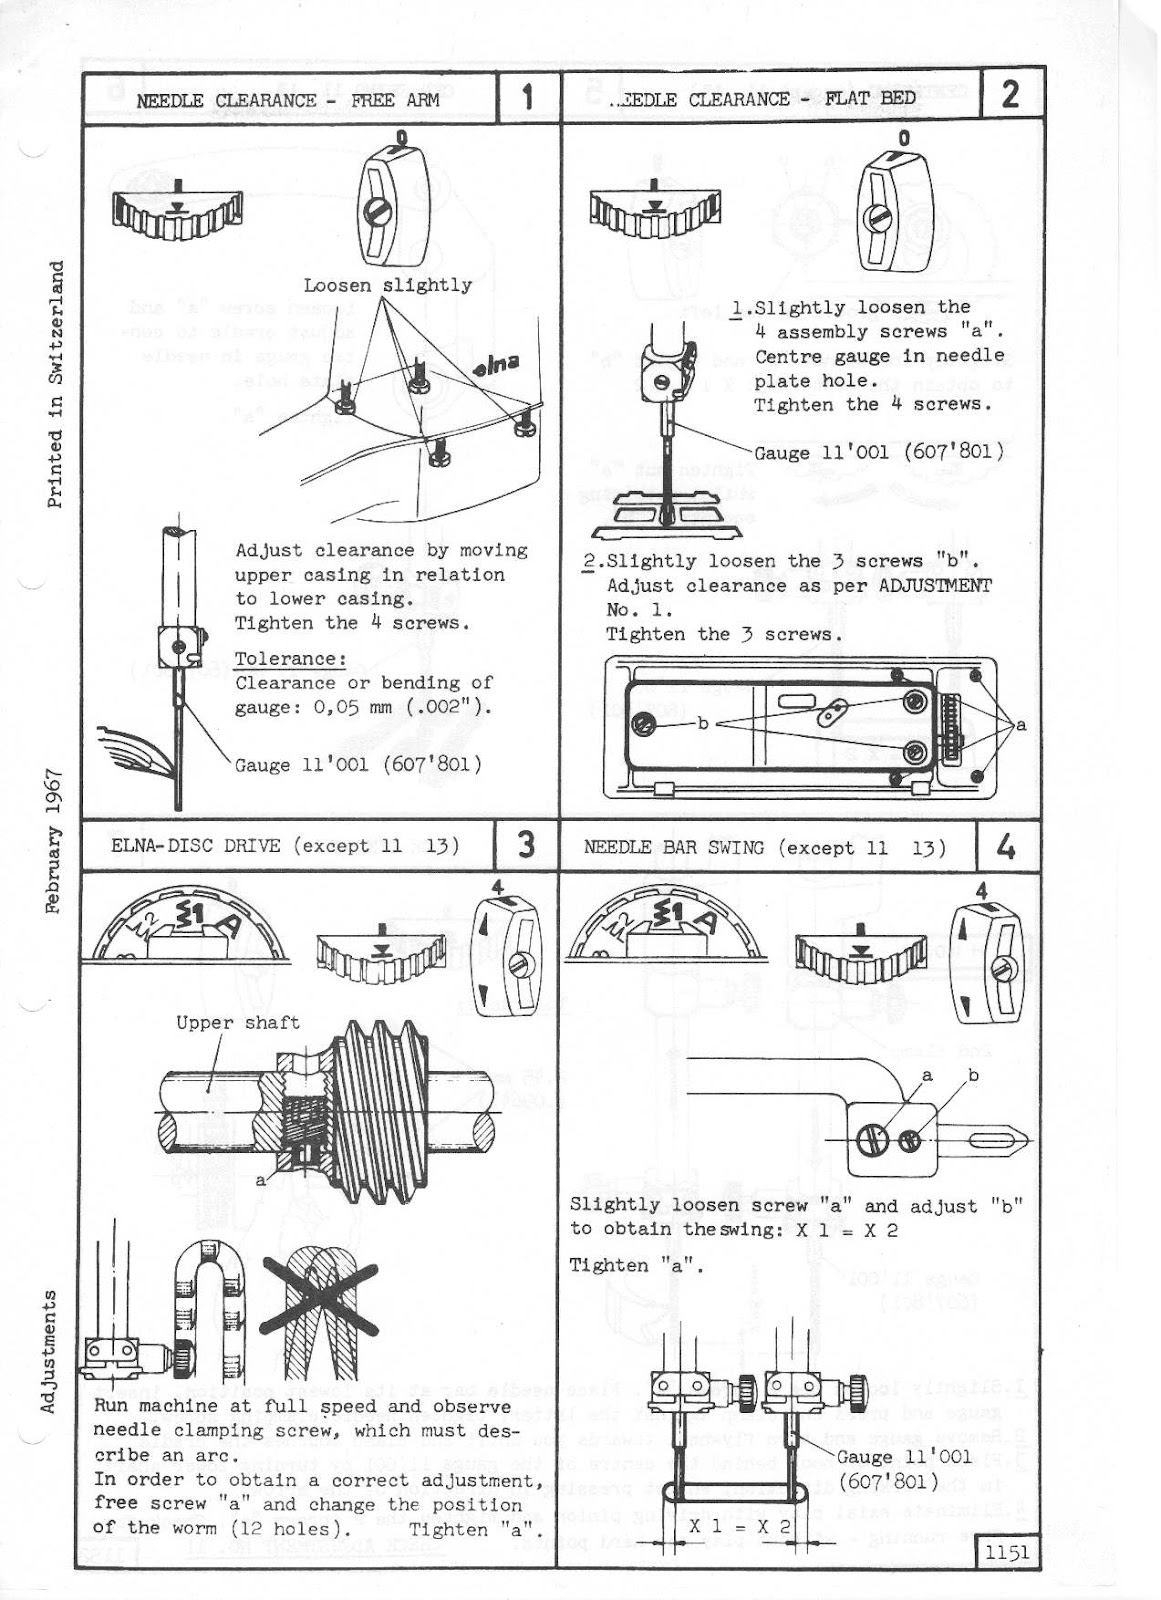 bernina sewing wiring diagram absolute    sewing    machine information 2012  absolute    sewing    machine information 2012